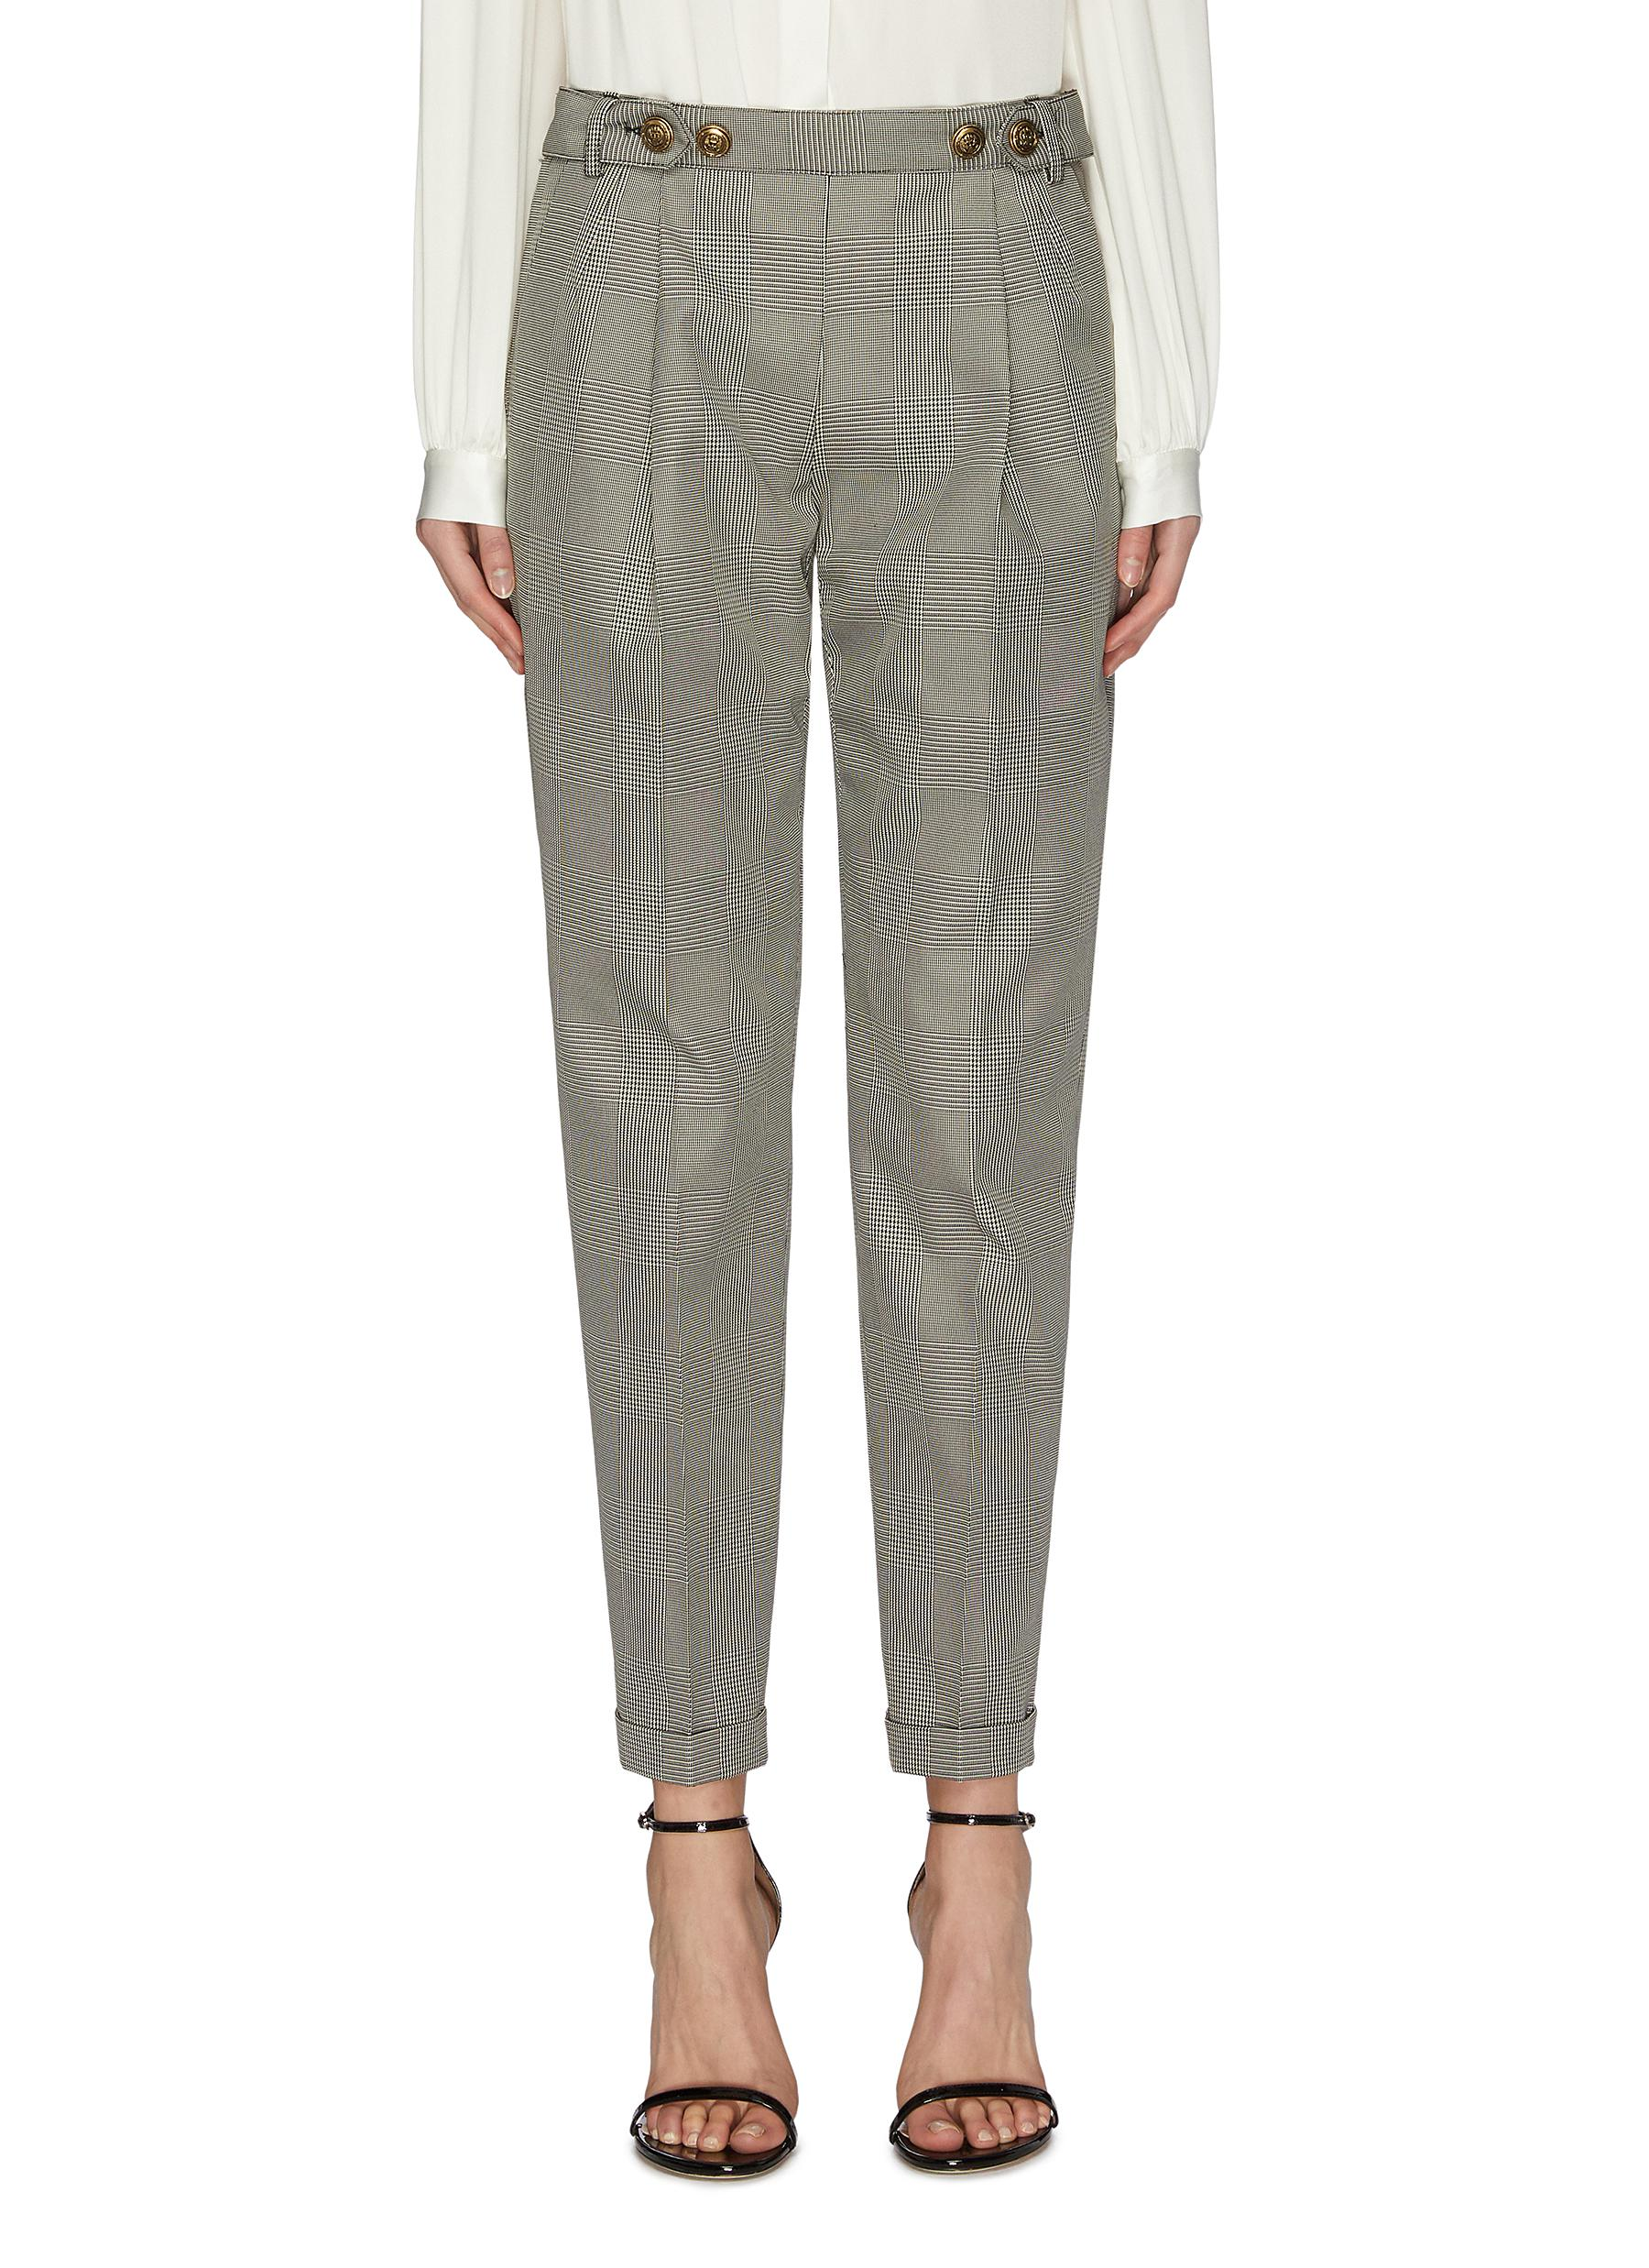 Buy Philosophy Di Lorenzo Serafini Pants & Shorts Button Embellished Tailored Check Pants